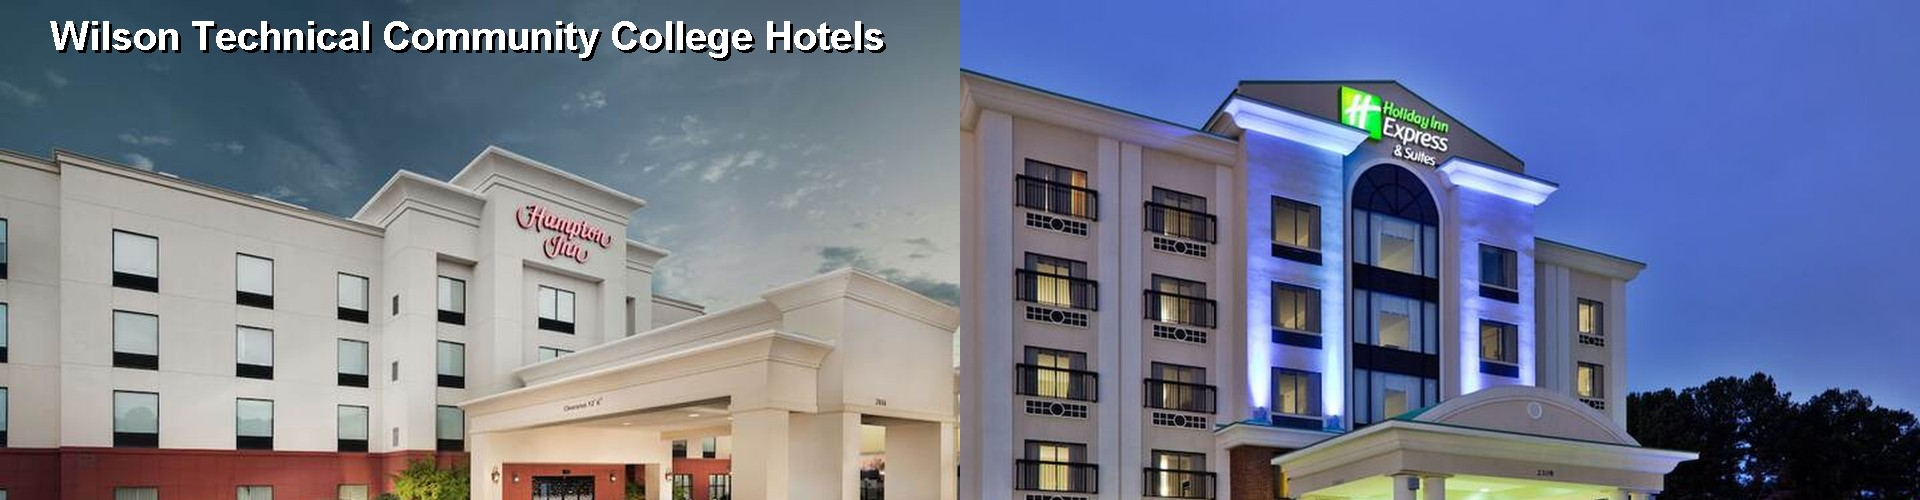 5 Best Hotels near Wilson Technical Community College